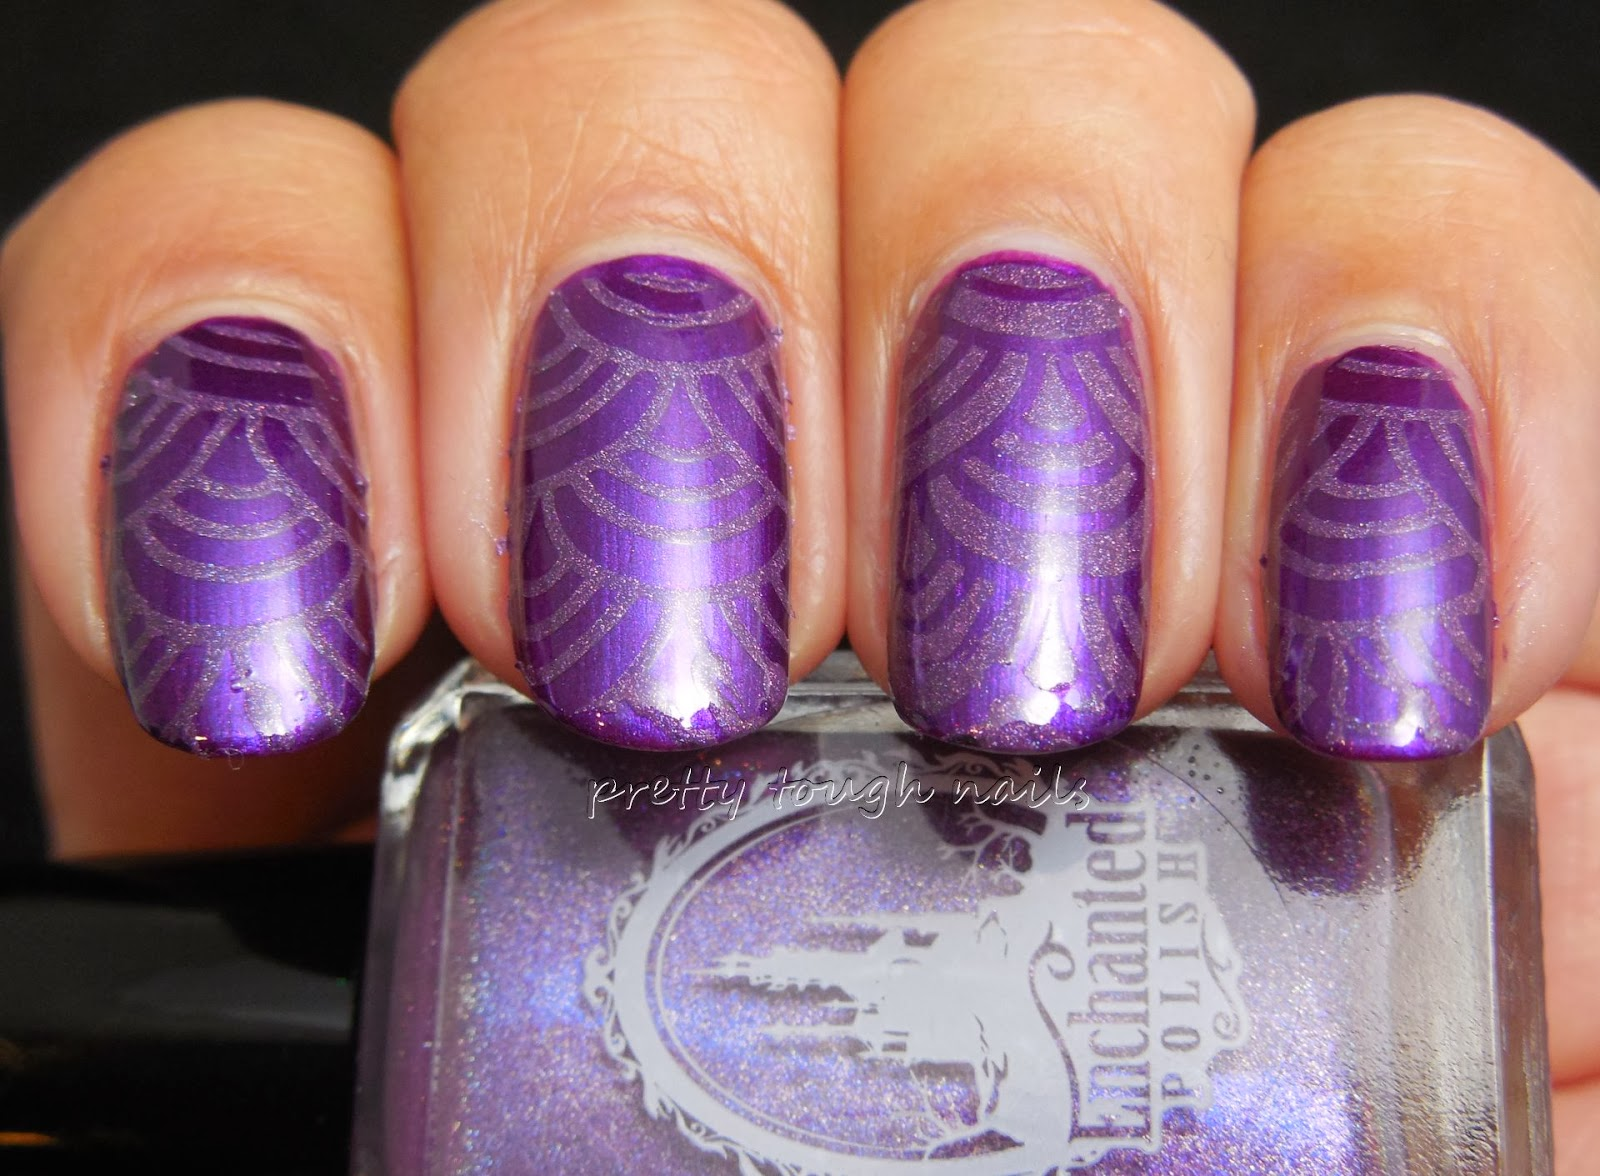 Butter London HRH Stamped With Enchanted Polish Mercy